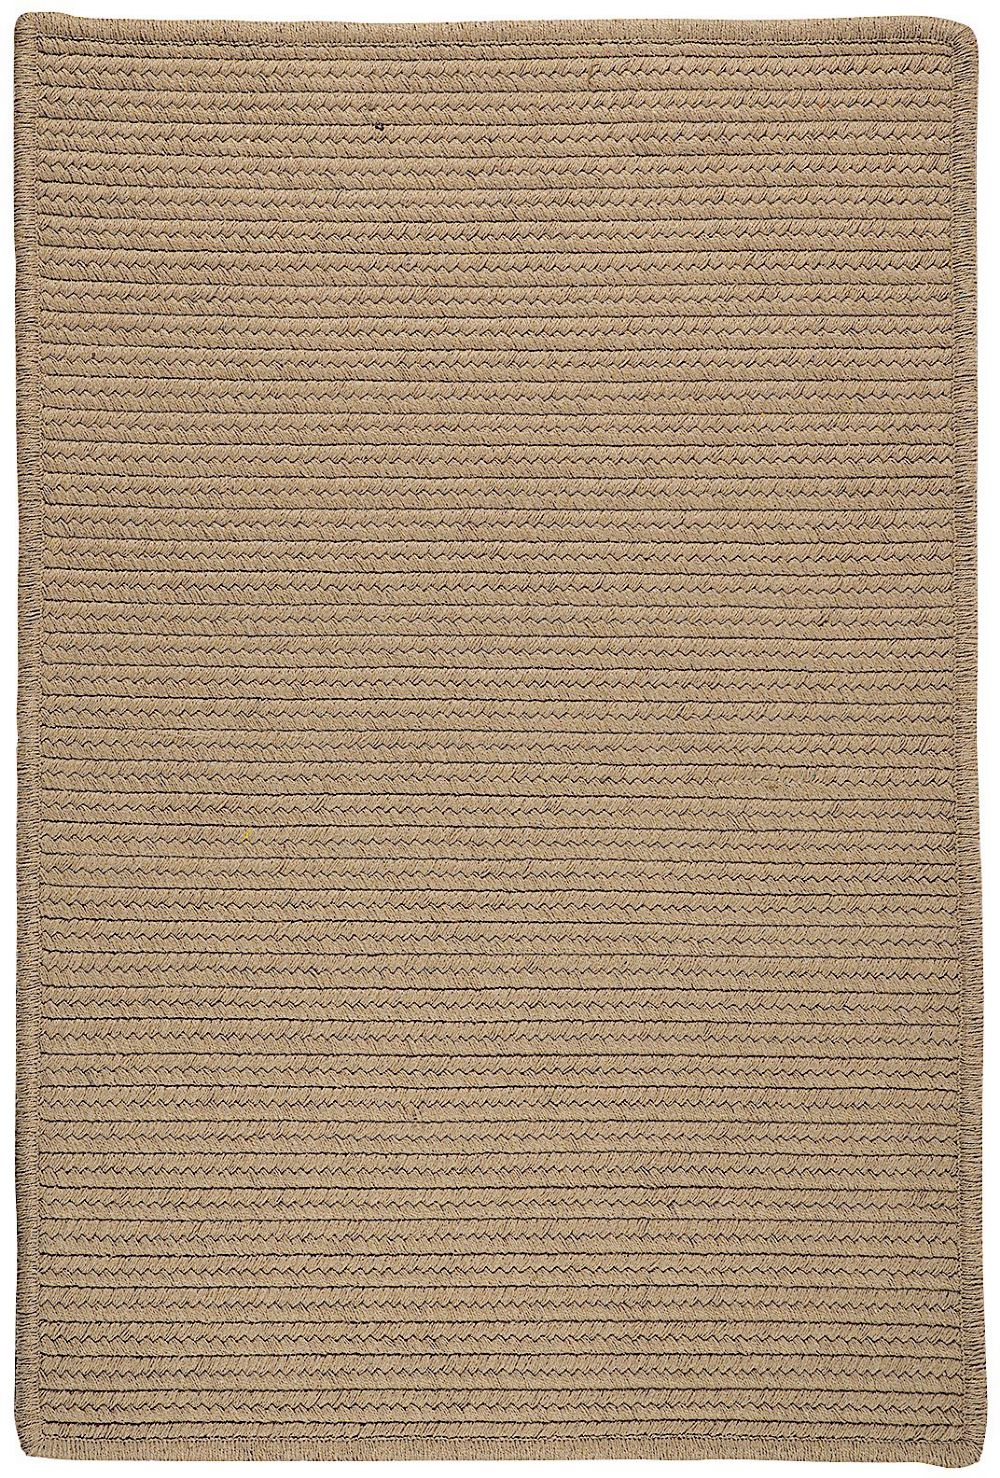 colonial mills sunbrella solid braided area rug collection